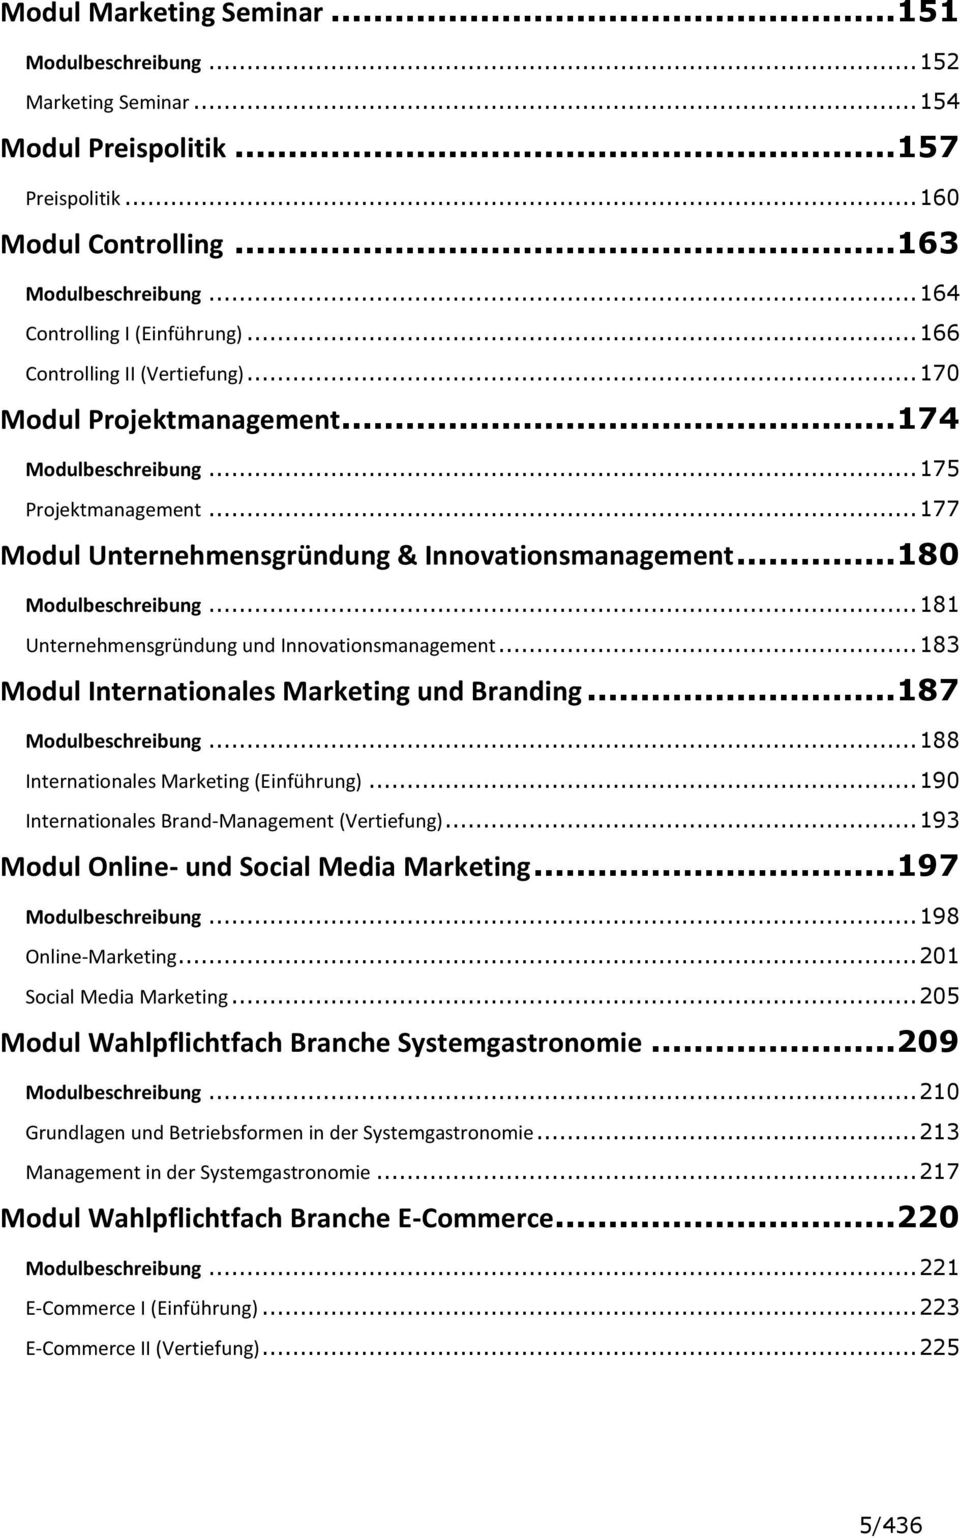 .. 177 Modul Unternehmensgründung & Innovationsmanagement... 180 Modulbeschreibung... 181 Unternehmensgründung und Innovationsmanagement... 183 Modul Internationales Marketing und Branding.